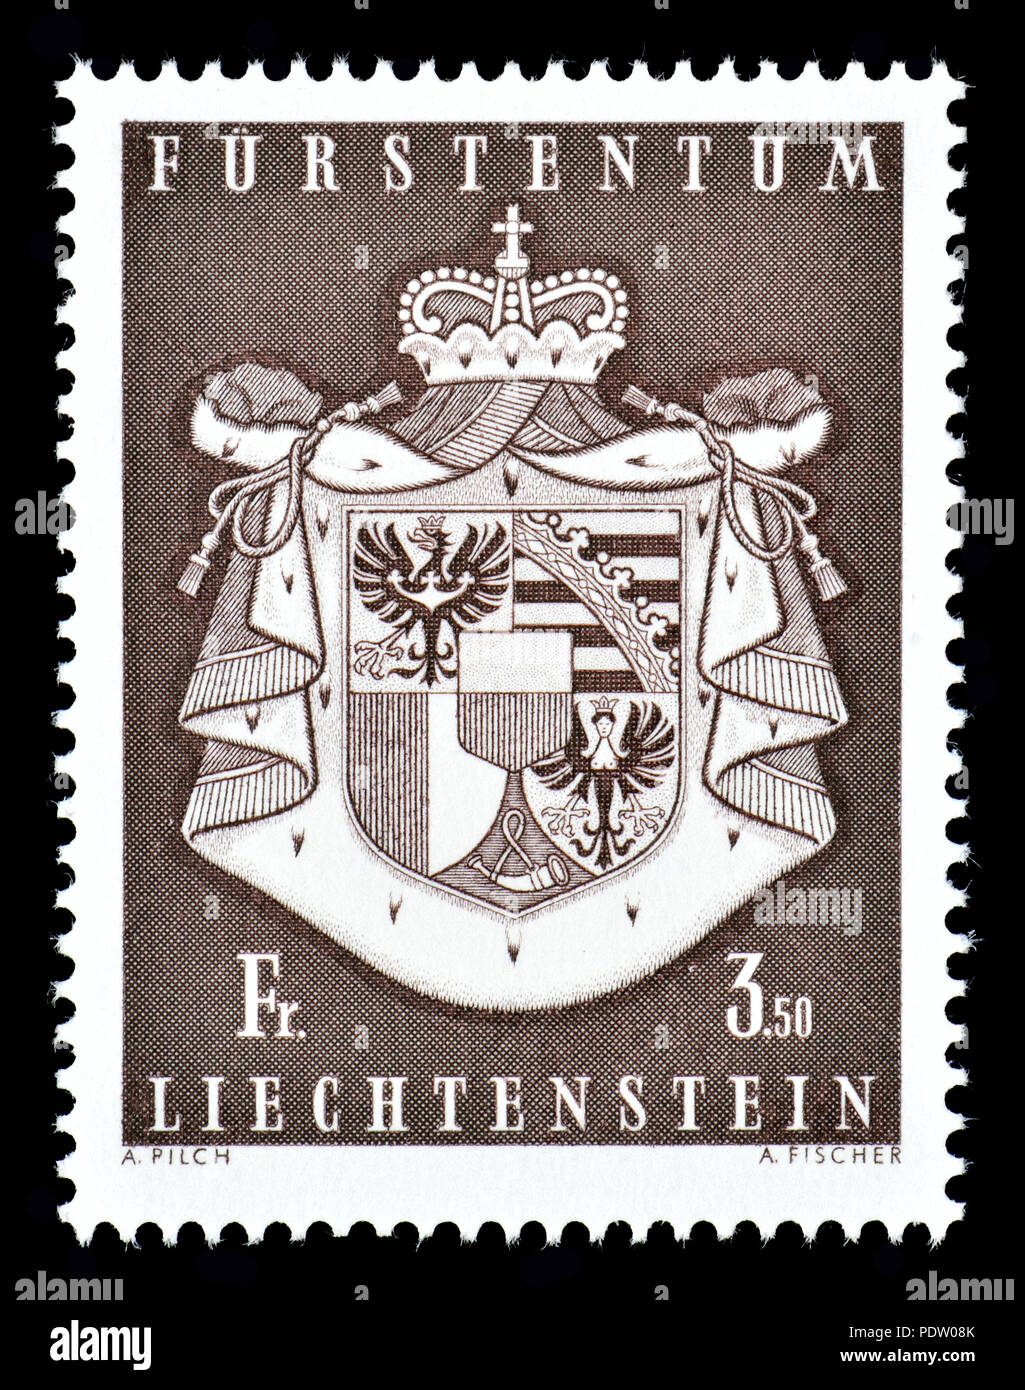 Liechtenstein postage stamp (1969): Coat of arms of Liechtenstein - Stock Image